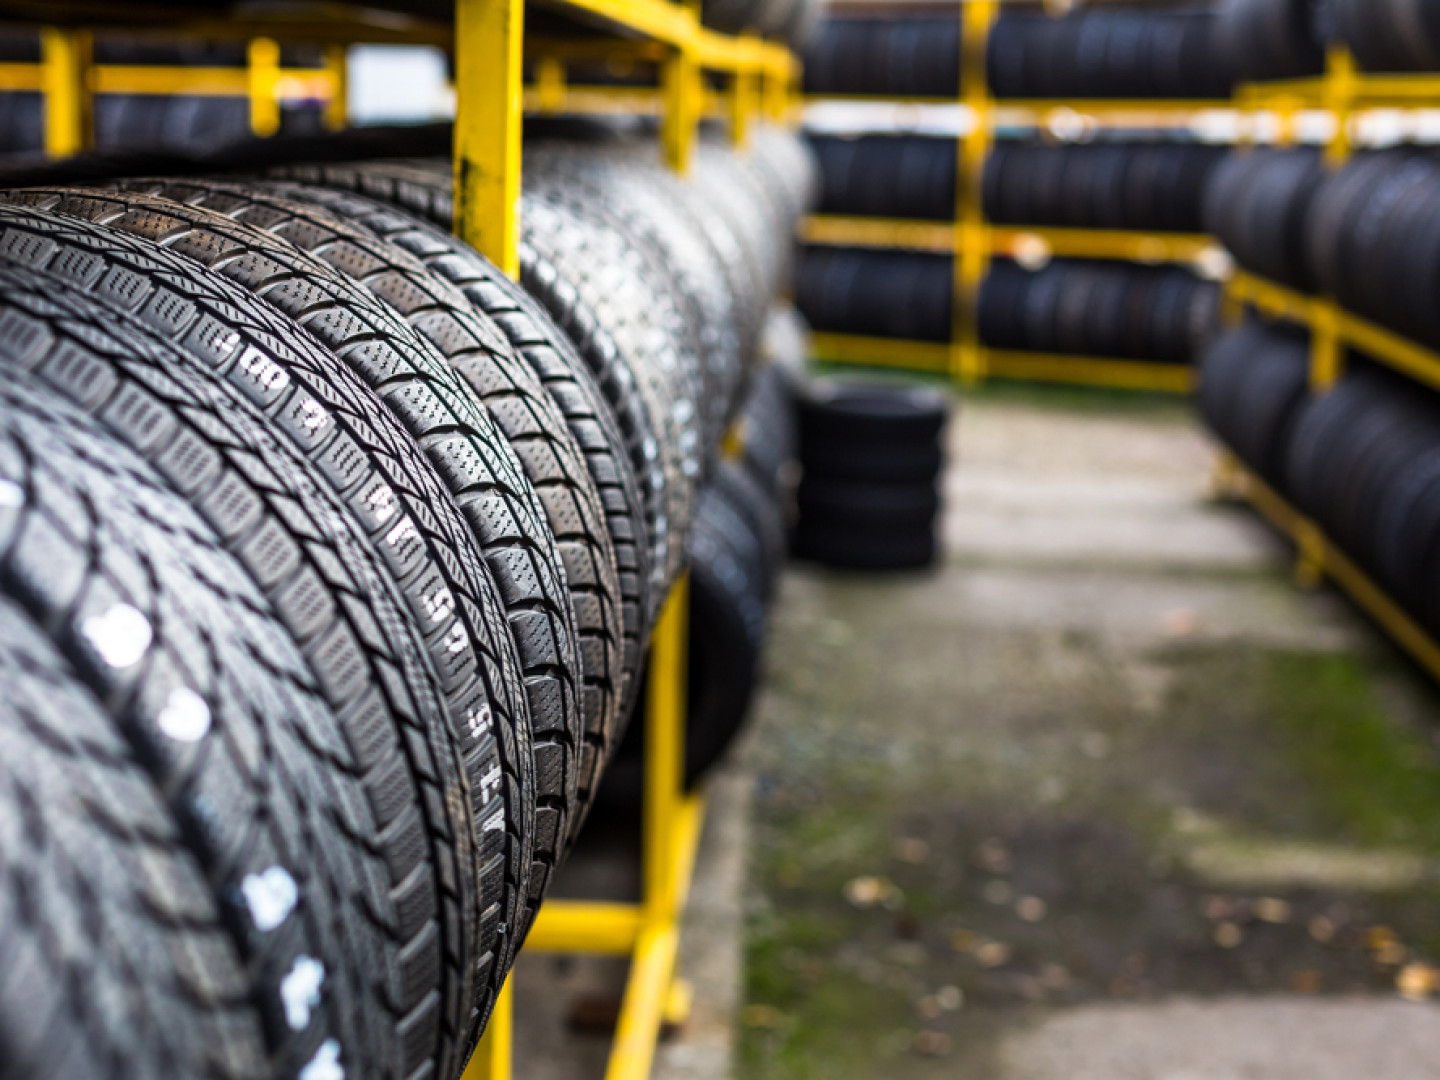 The importance of safe tires